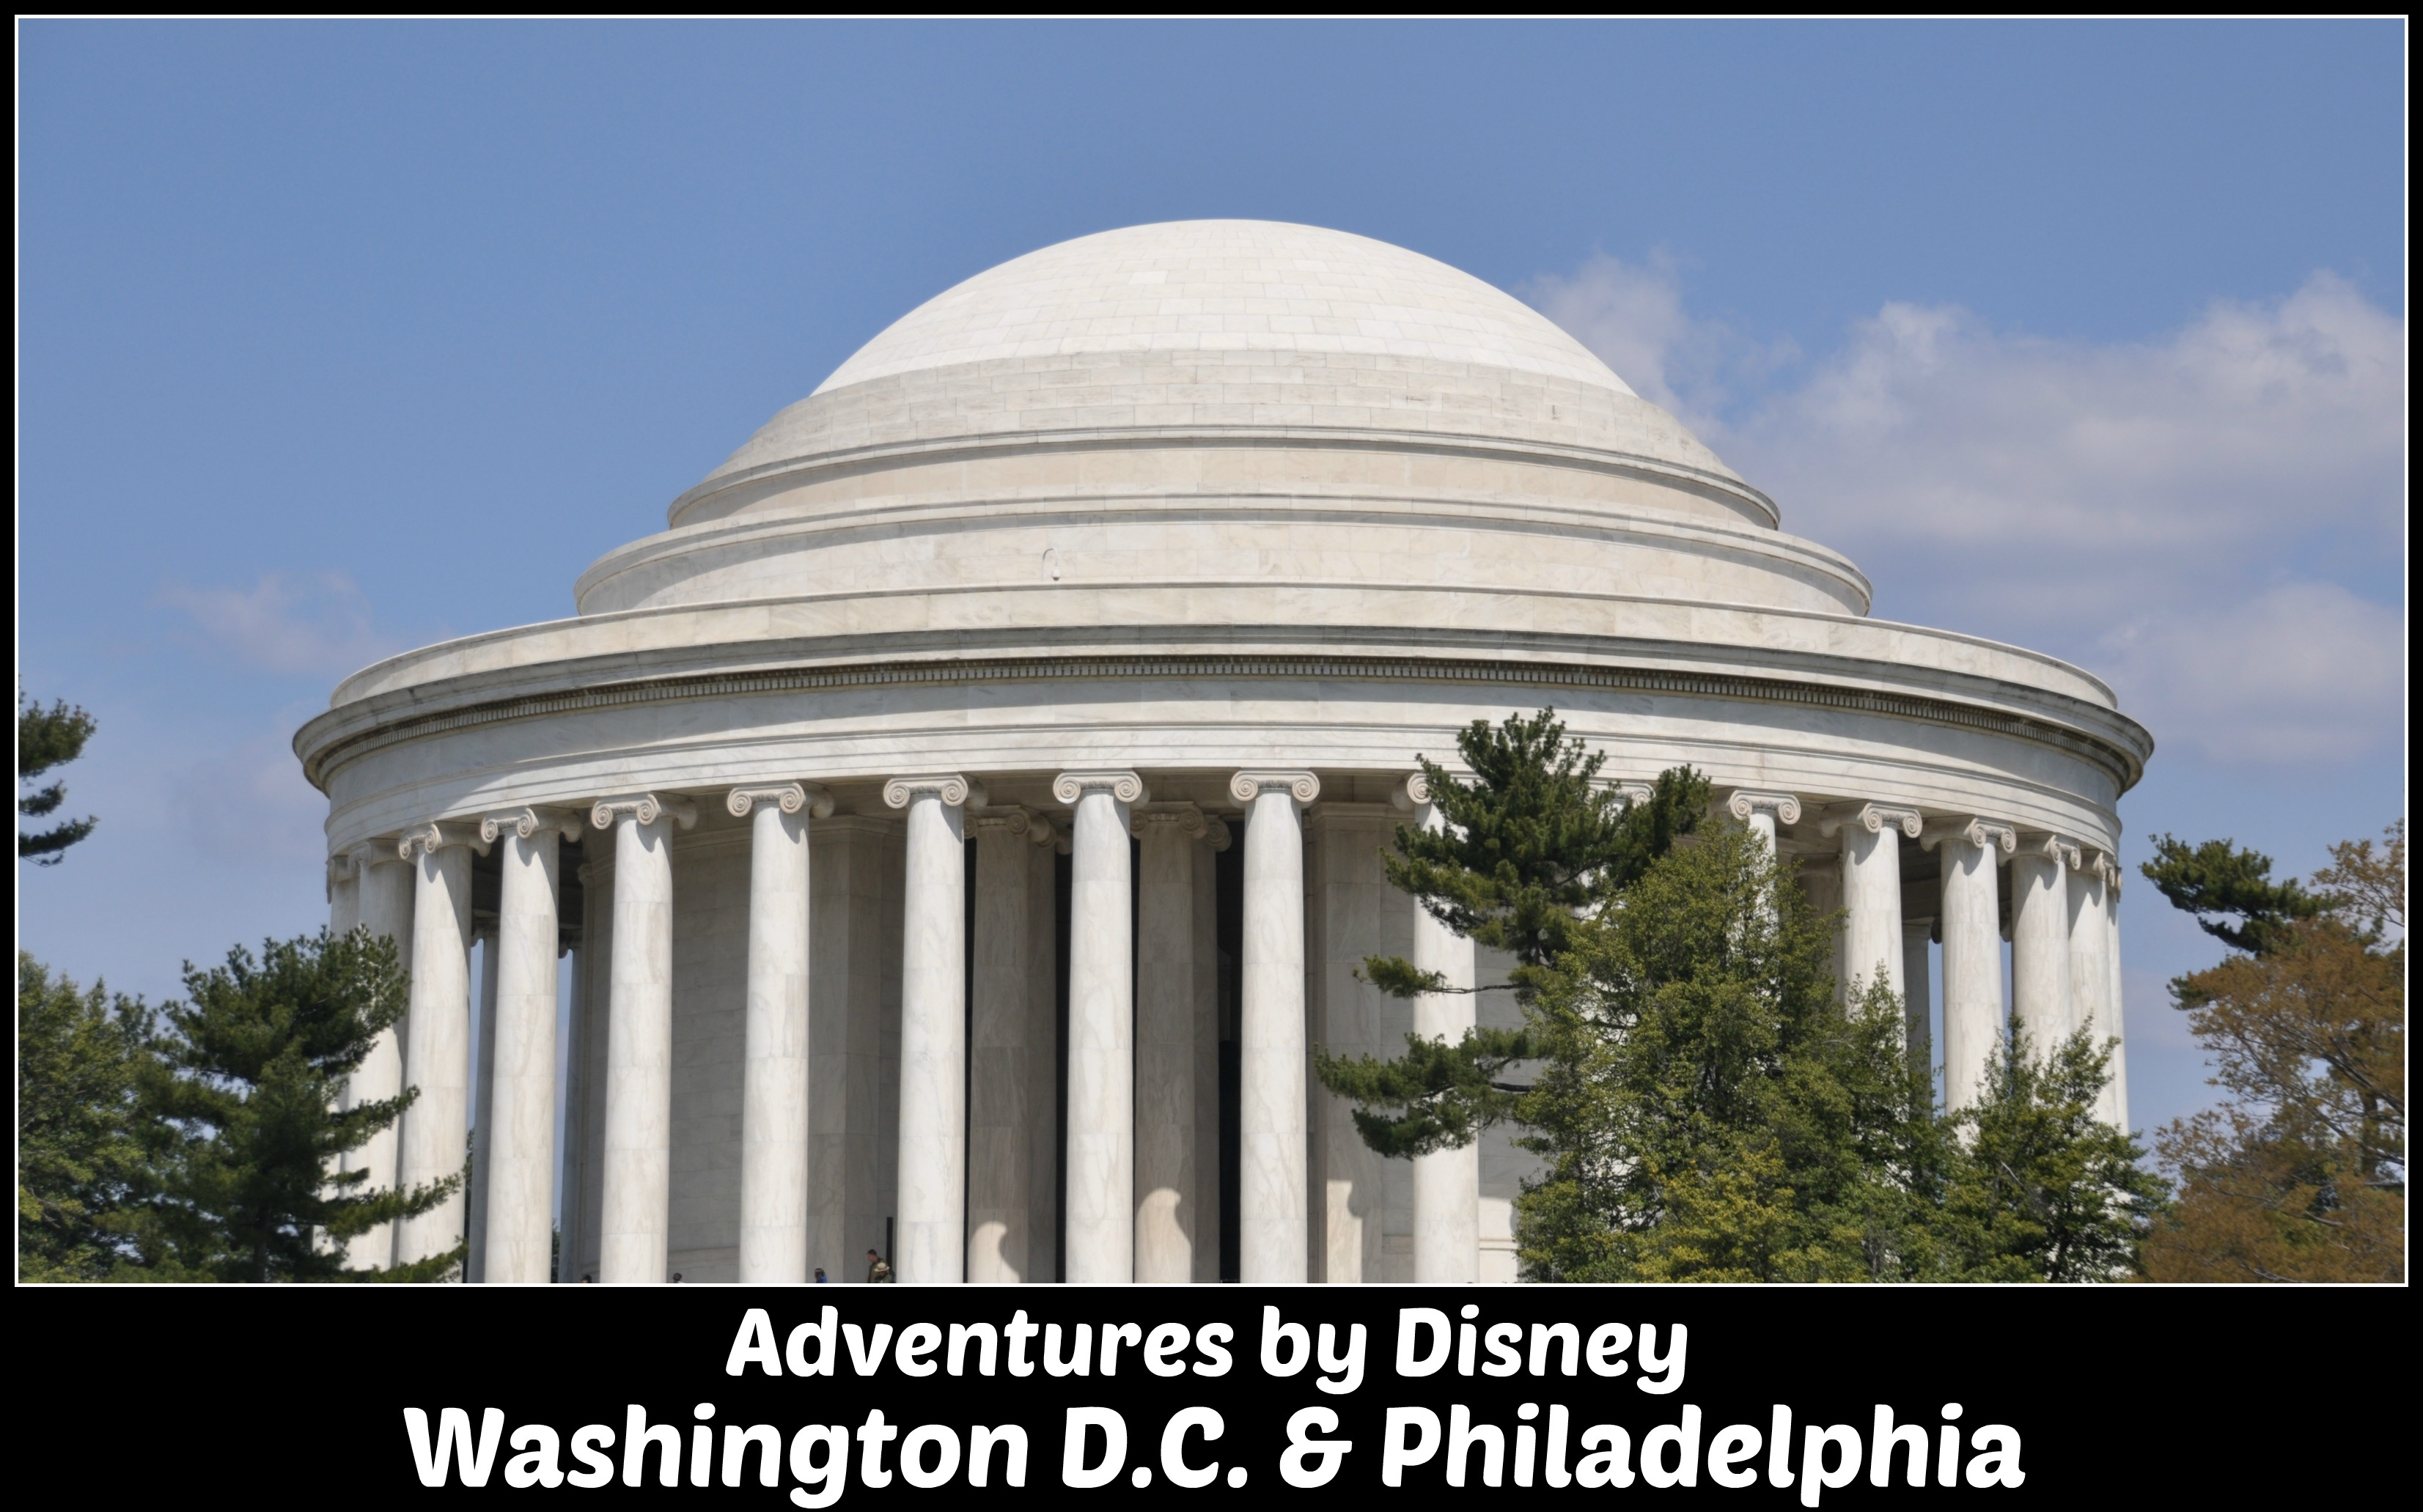 Adventures by Disney Washington D.C. and Philadelphia guided tour